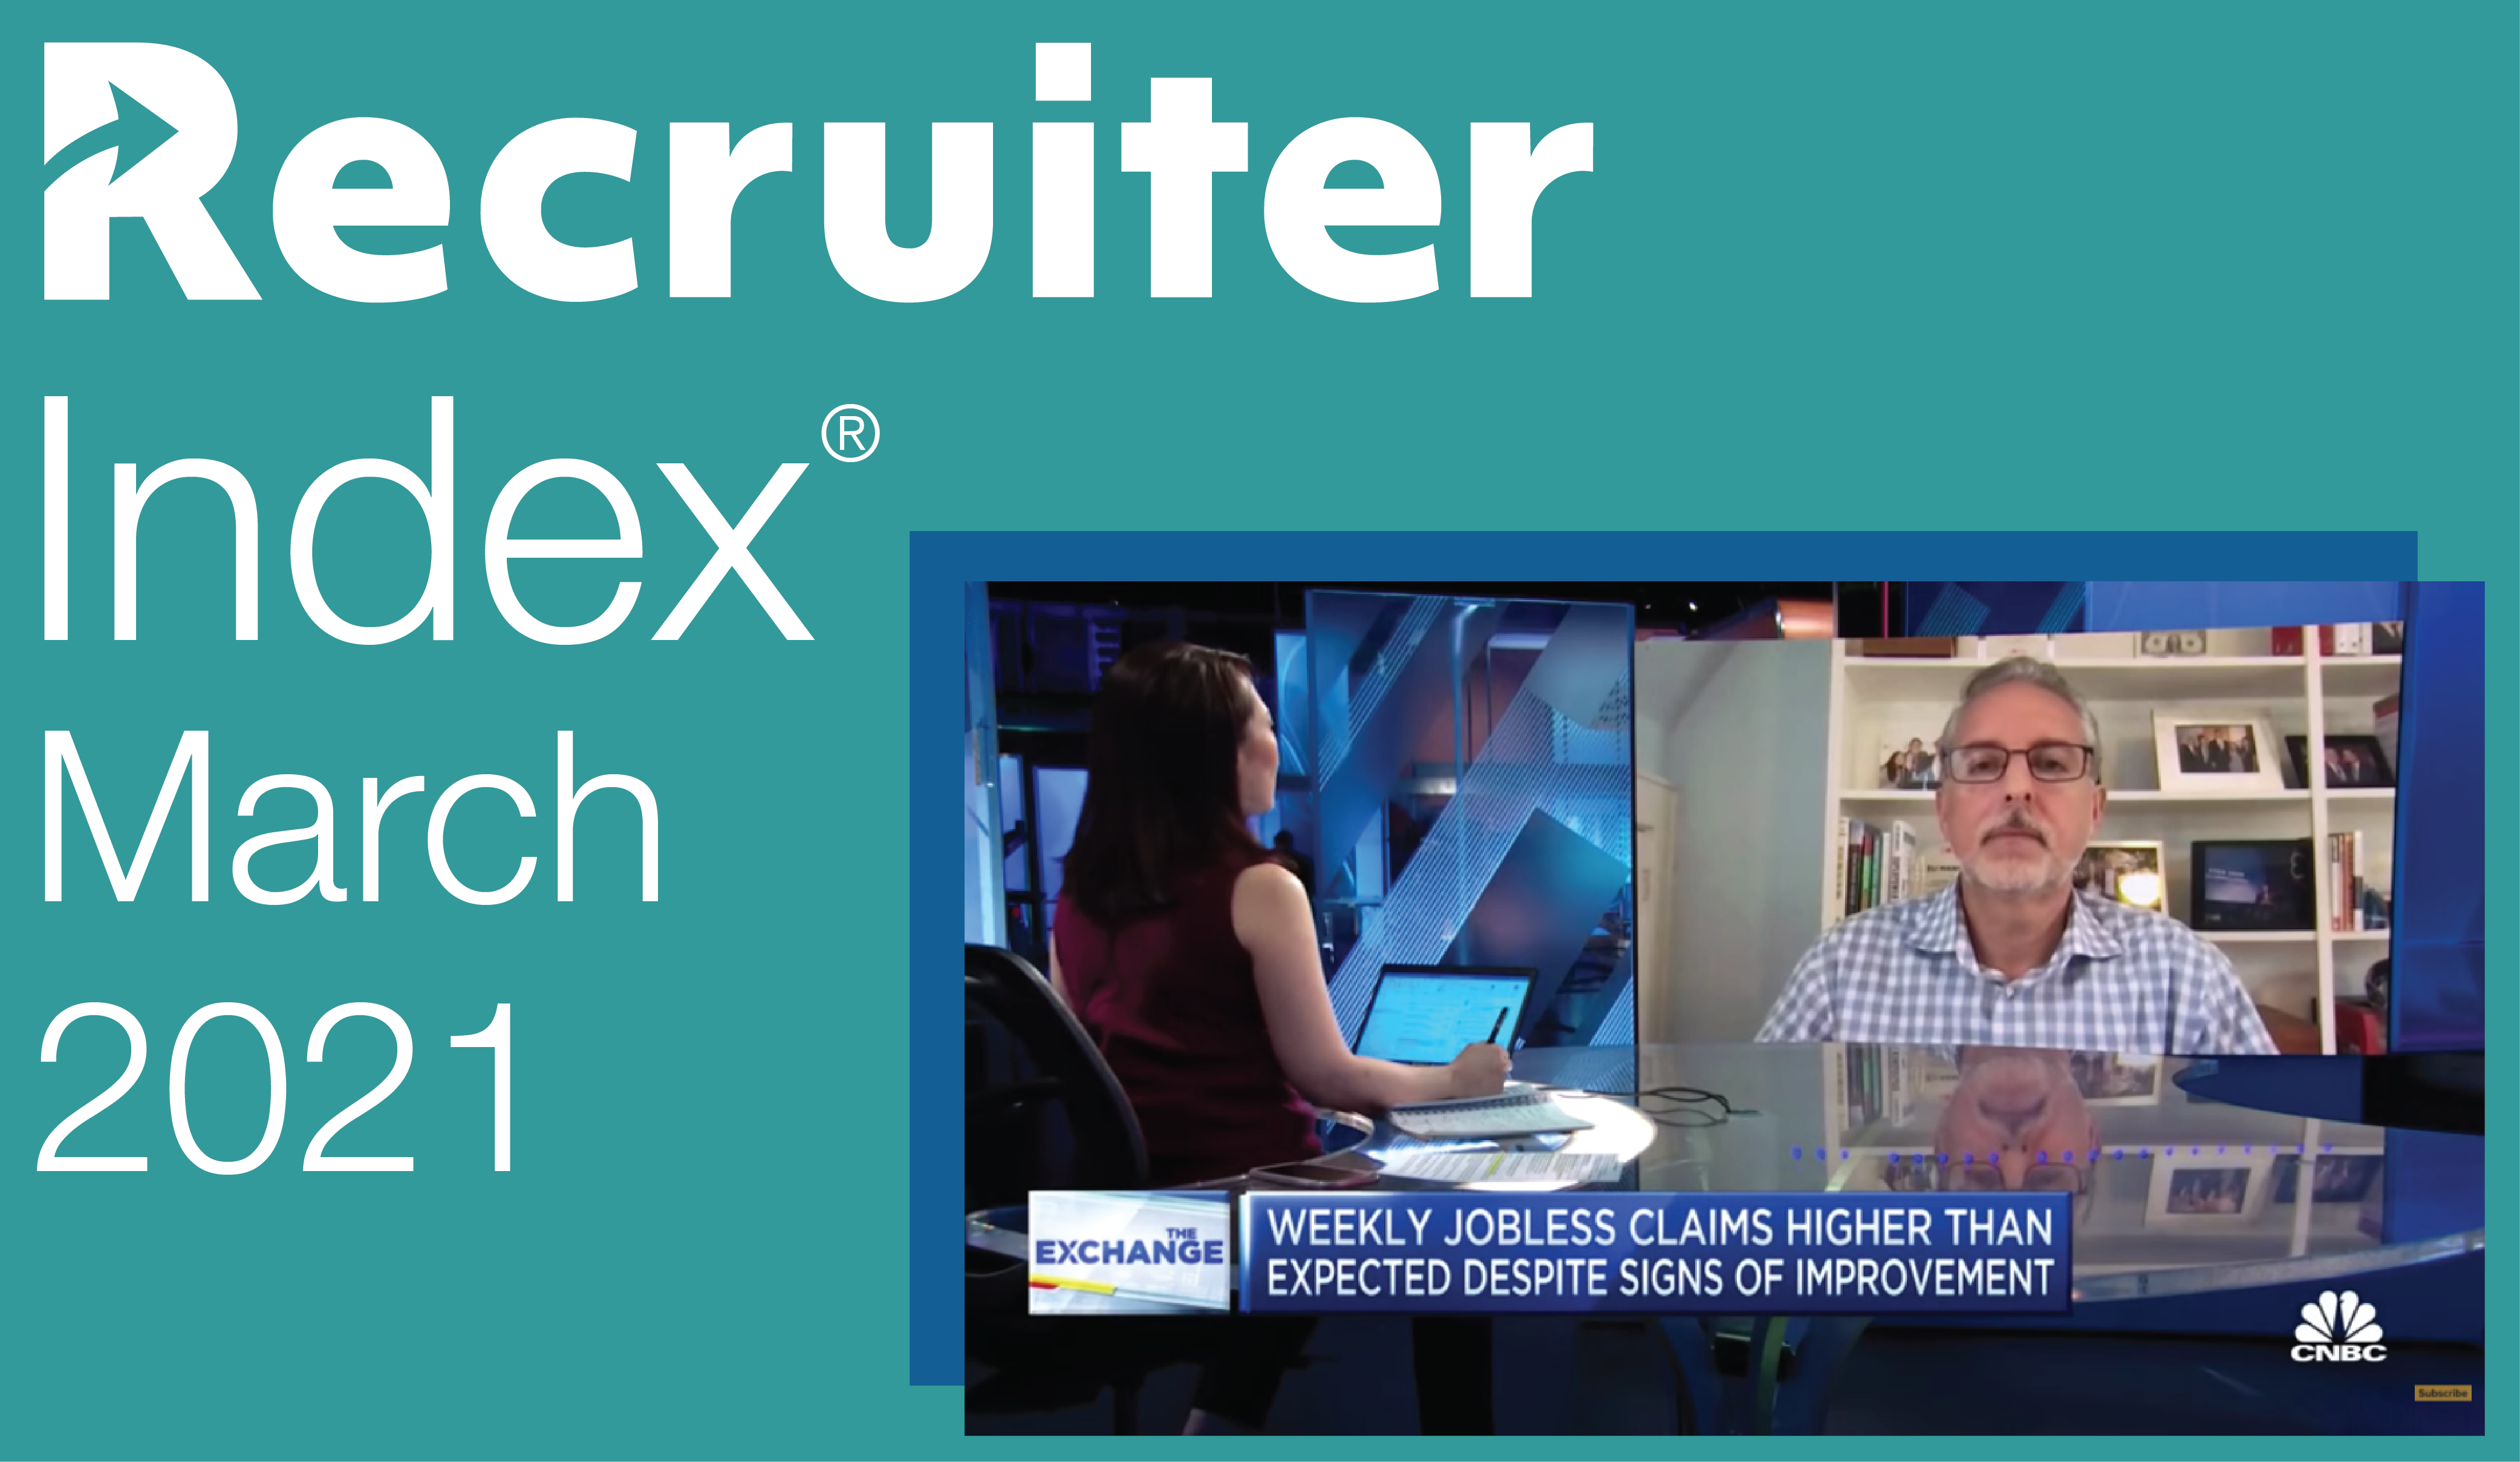 Recruiter Index March 2021